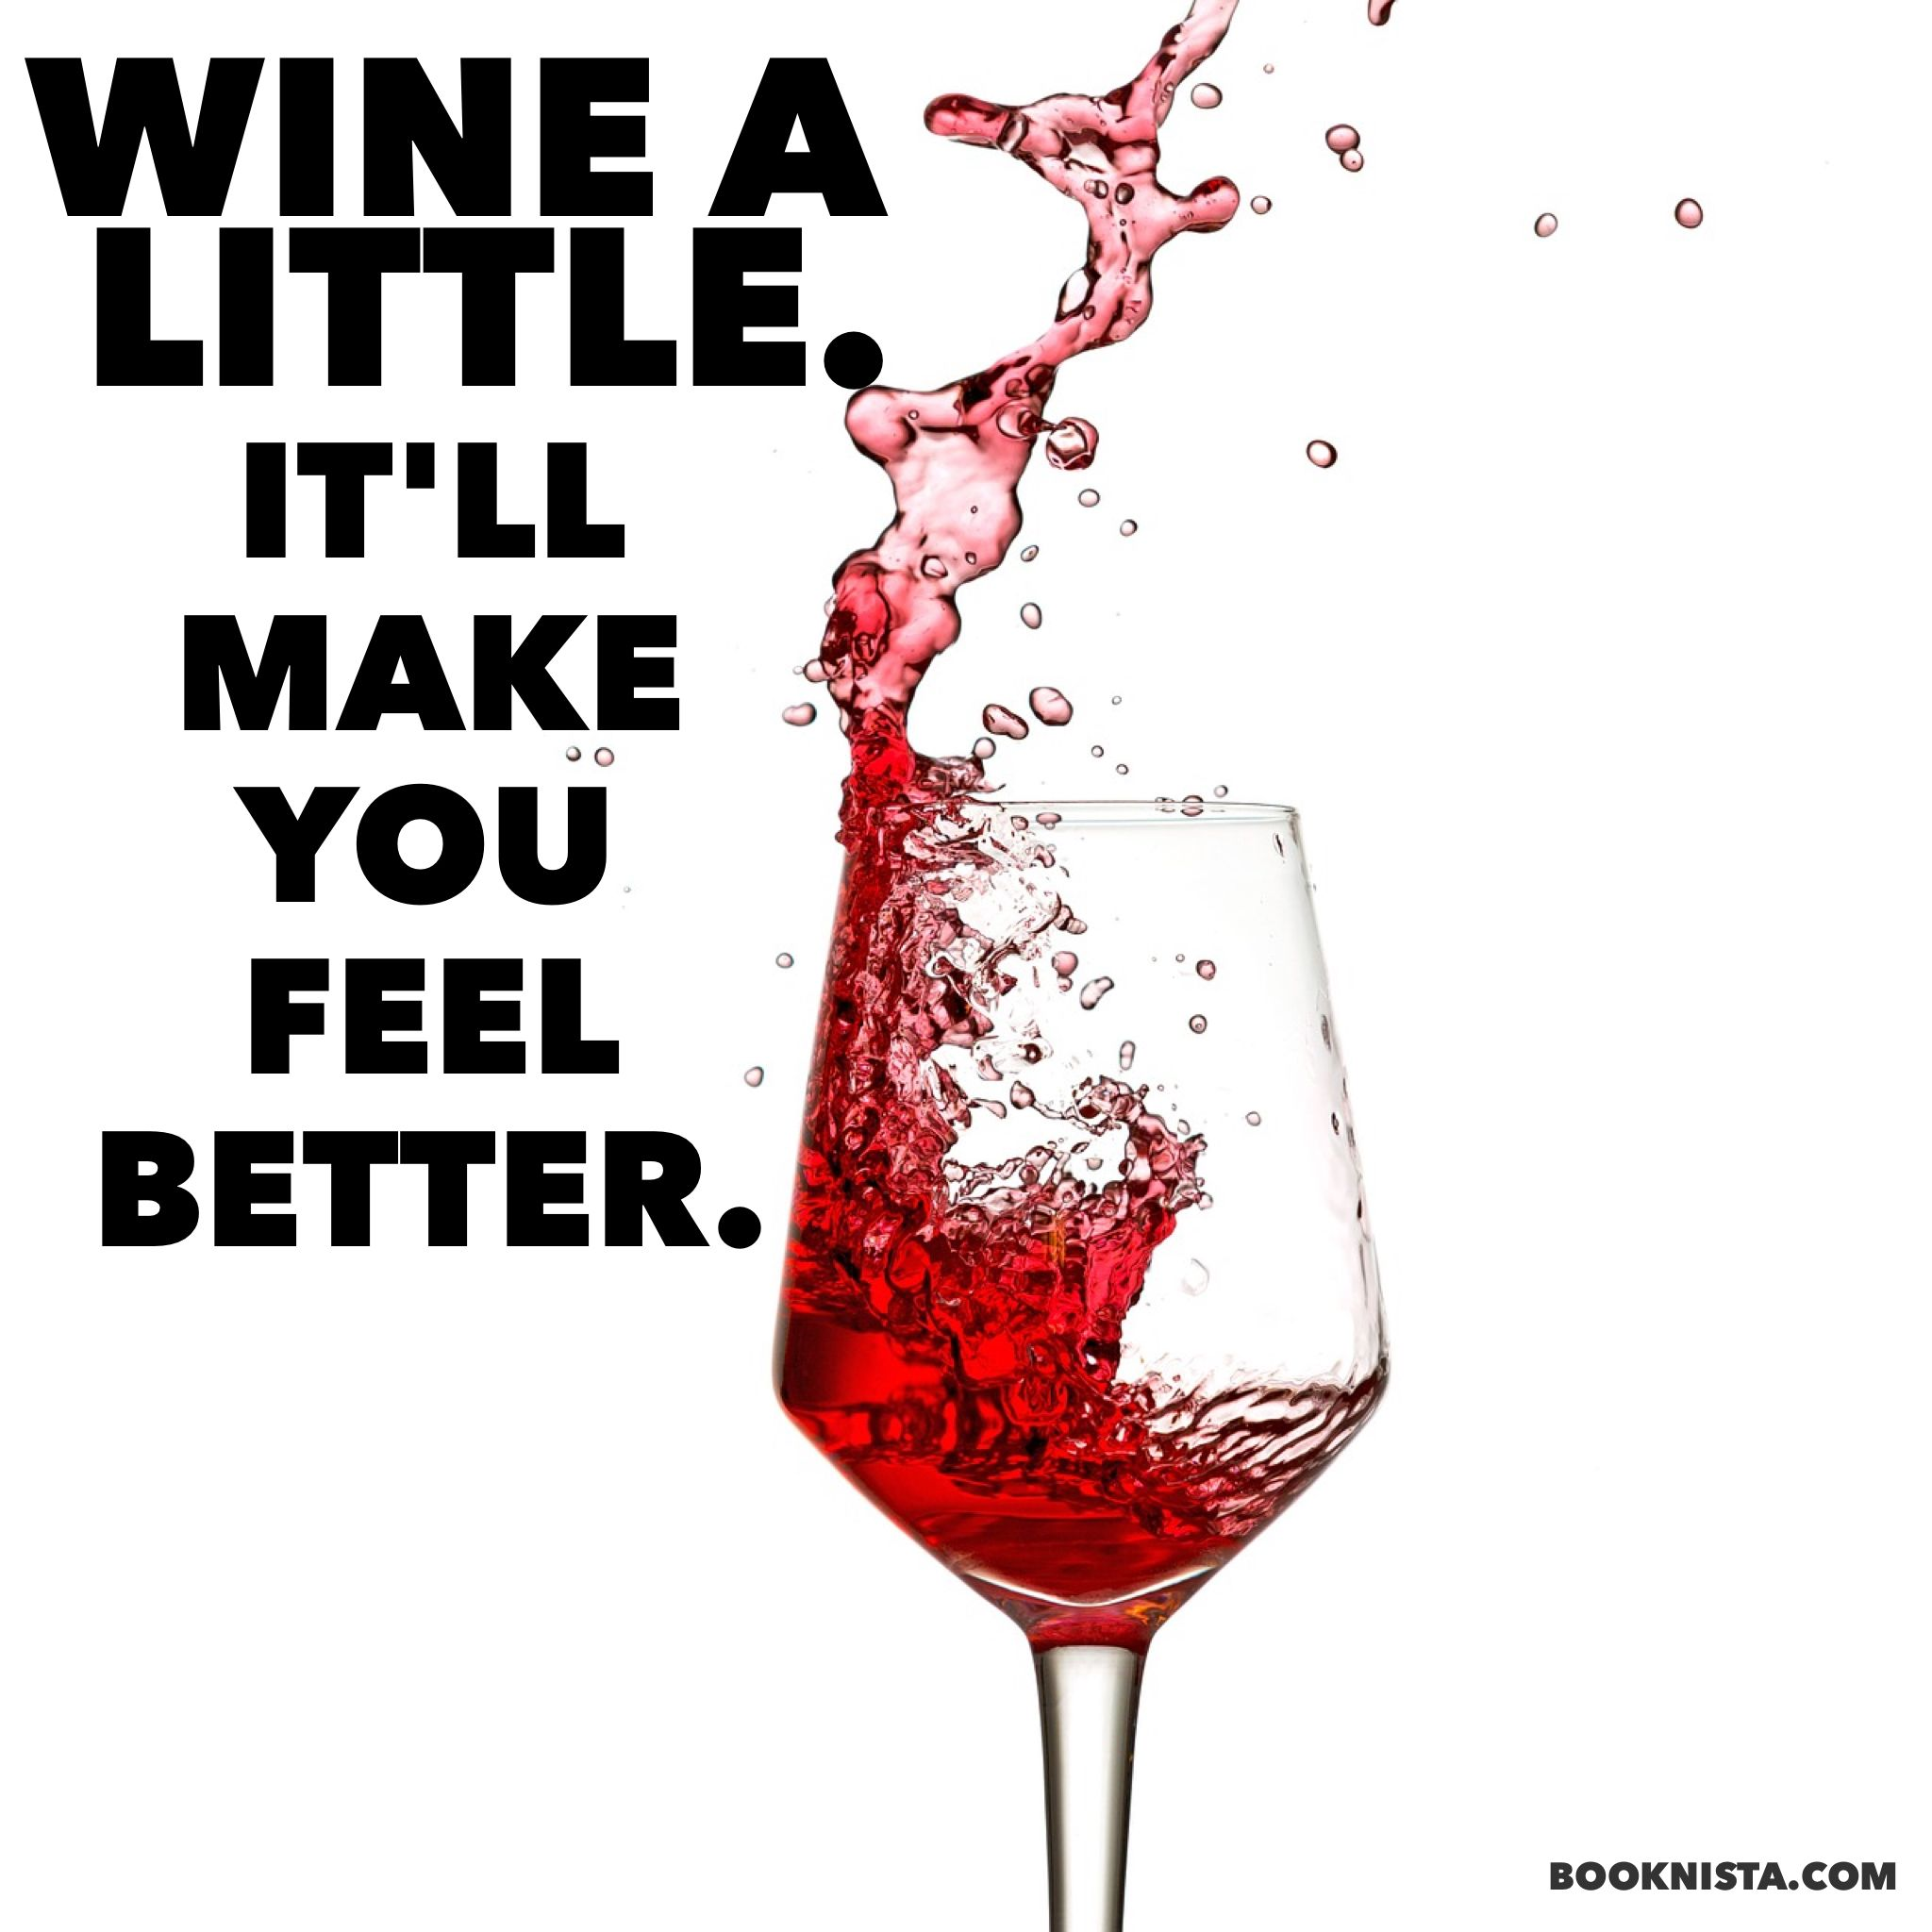 Pin By Booknista On Wine Quotes Messages Wine Quotes Alcoholic Drinks How Are You Feeling